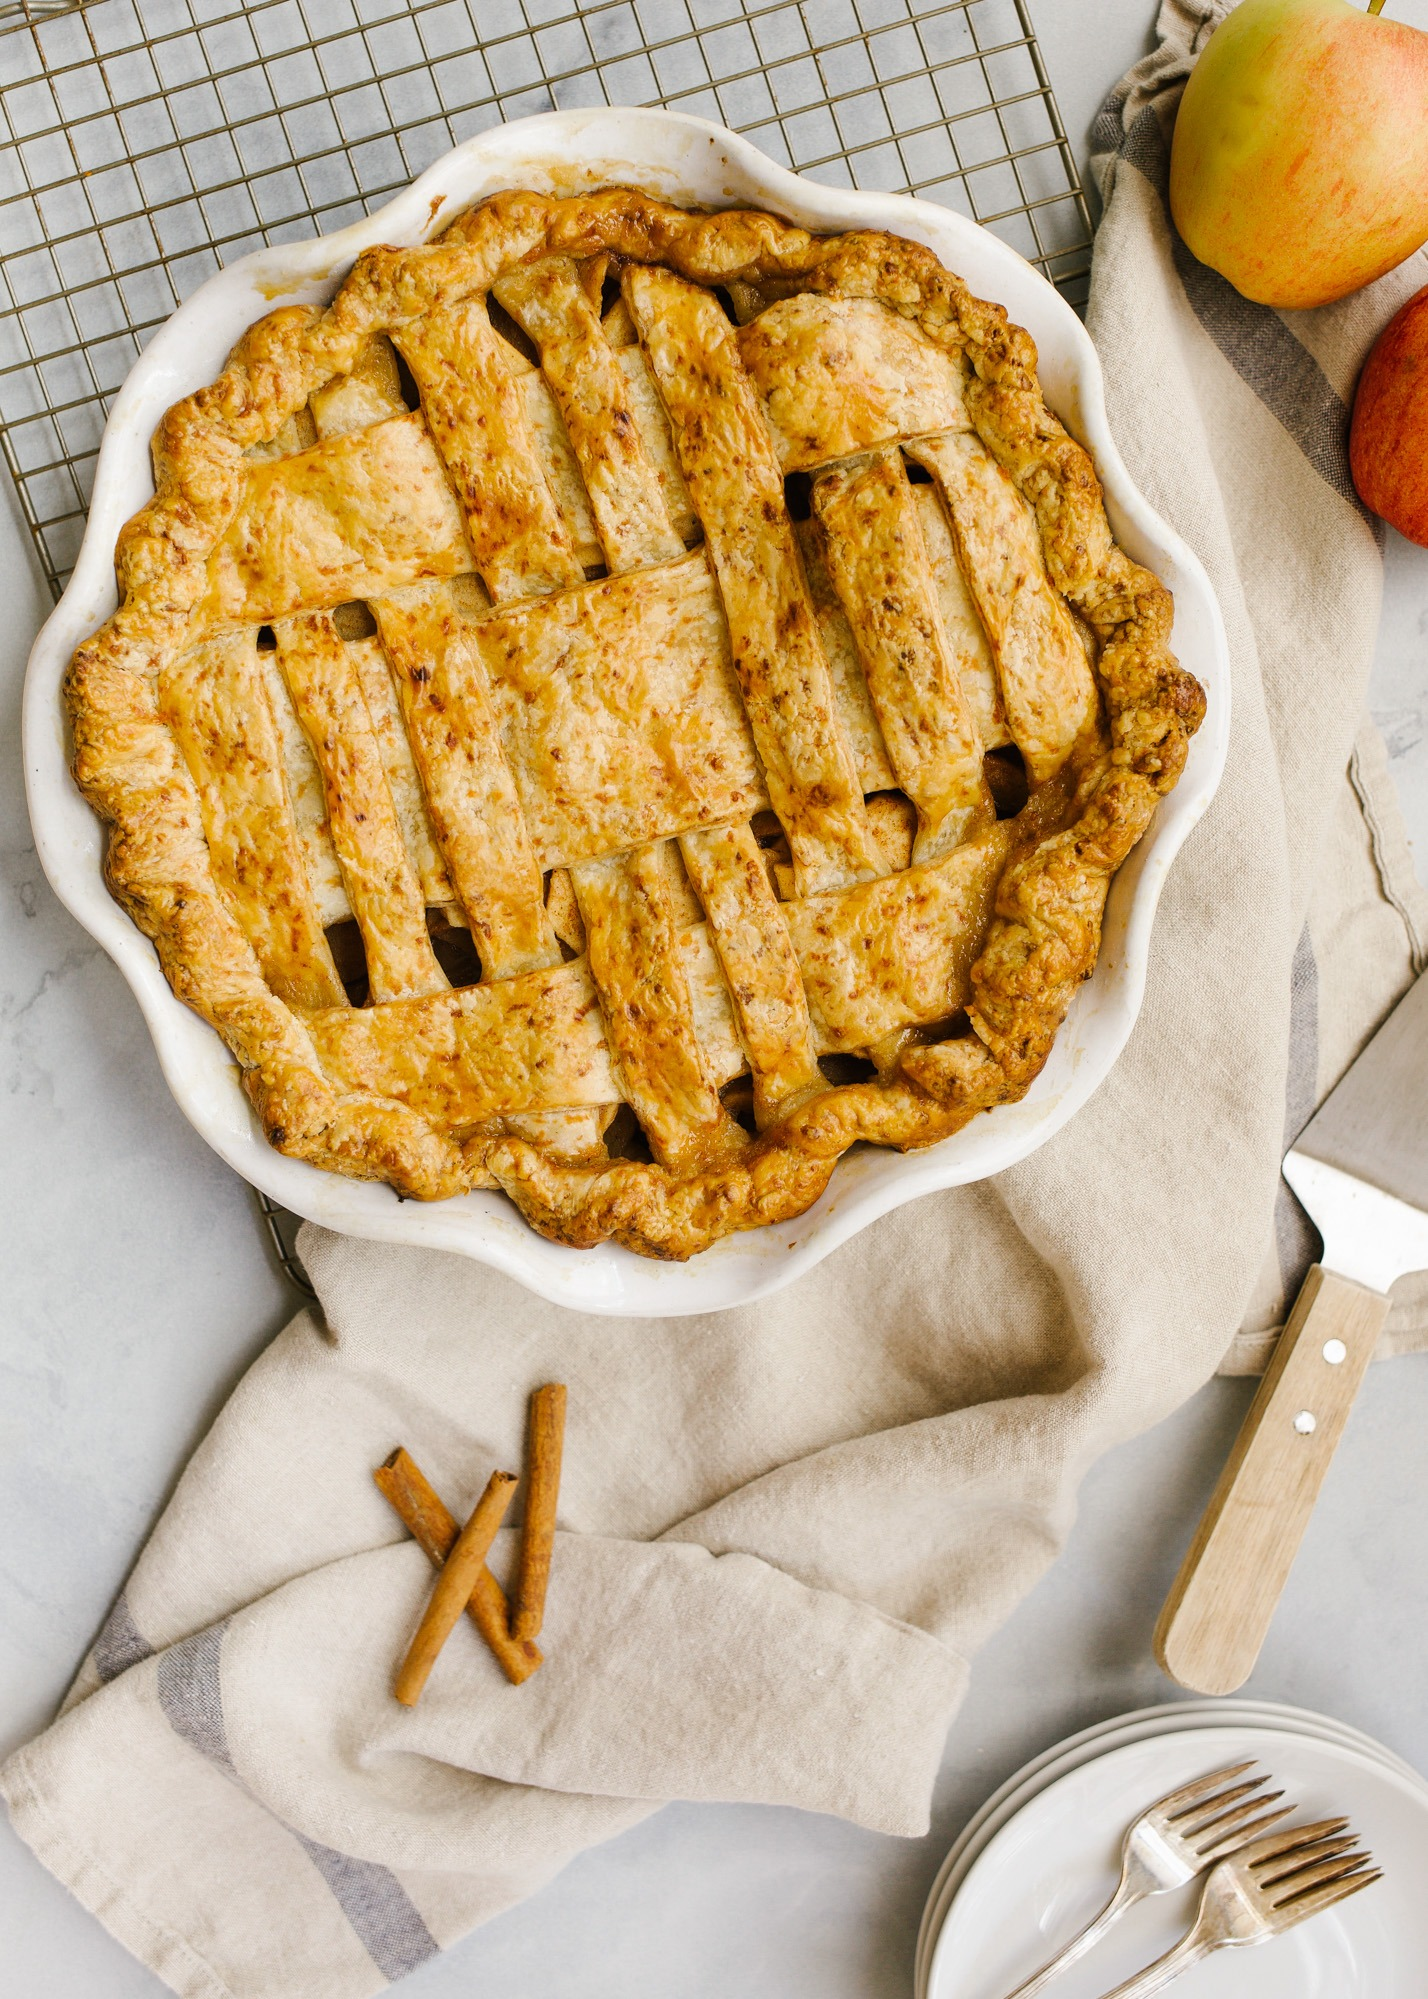 Cheddar Apple Pie by Wood and Spoon. This is an apple pie with an all-butter and cheddar cheese crust. The fruit filling is flavored with cinnamon and fall spices and is juicy. The cheddar crust is lightly flavored and flaky. Learn more about how to on this autumn lattice pie on thewoodandspoon.com